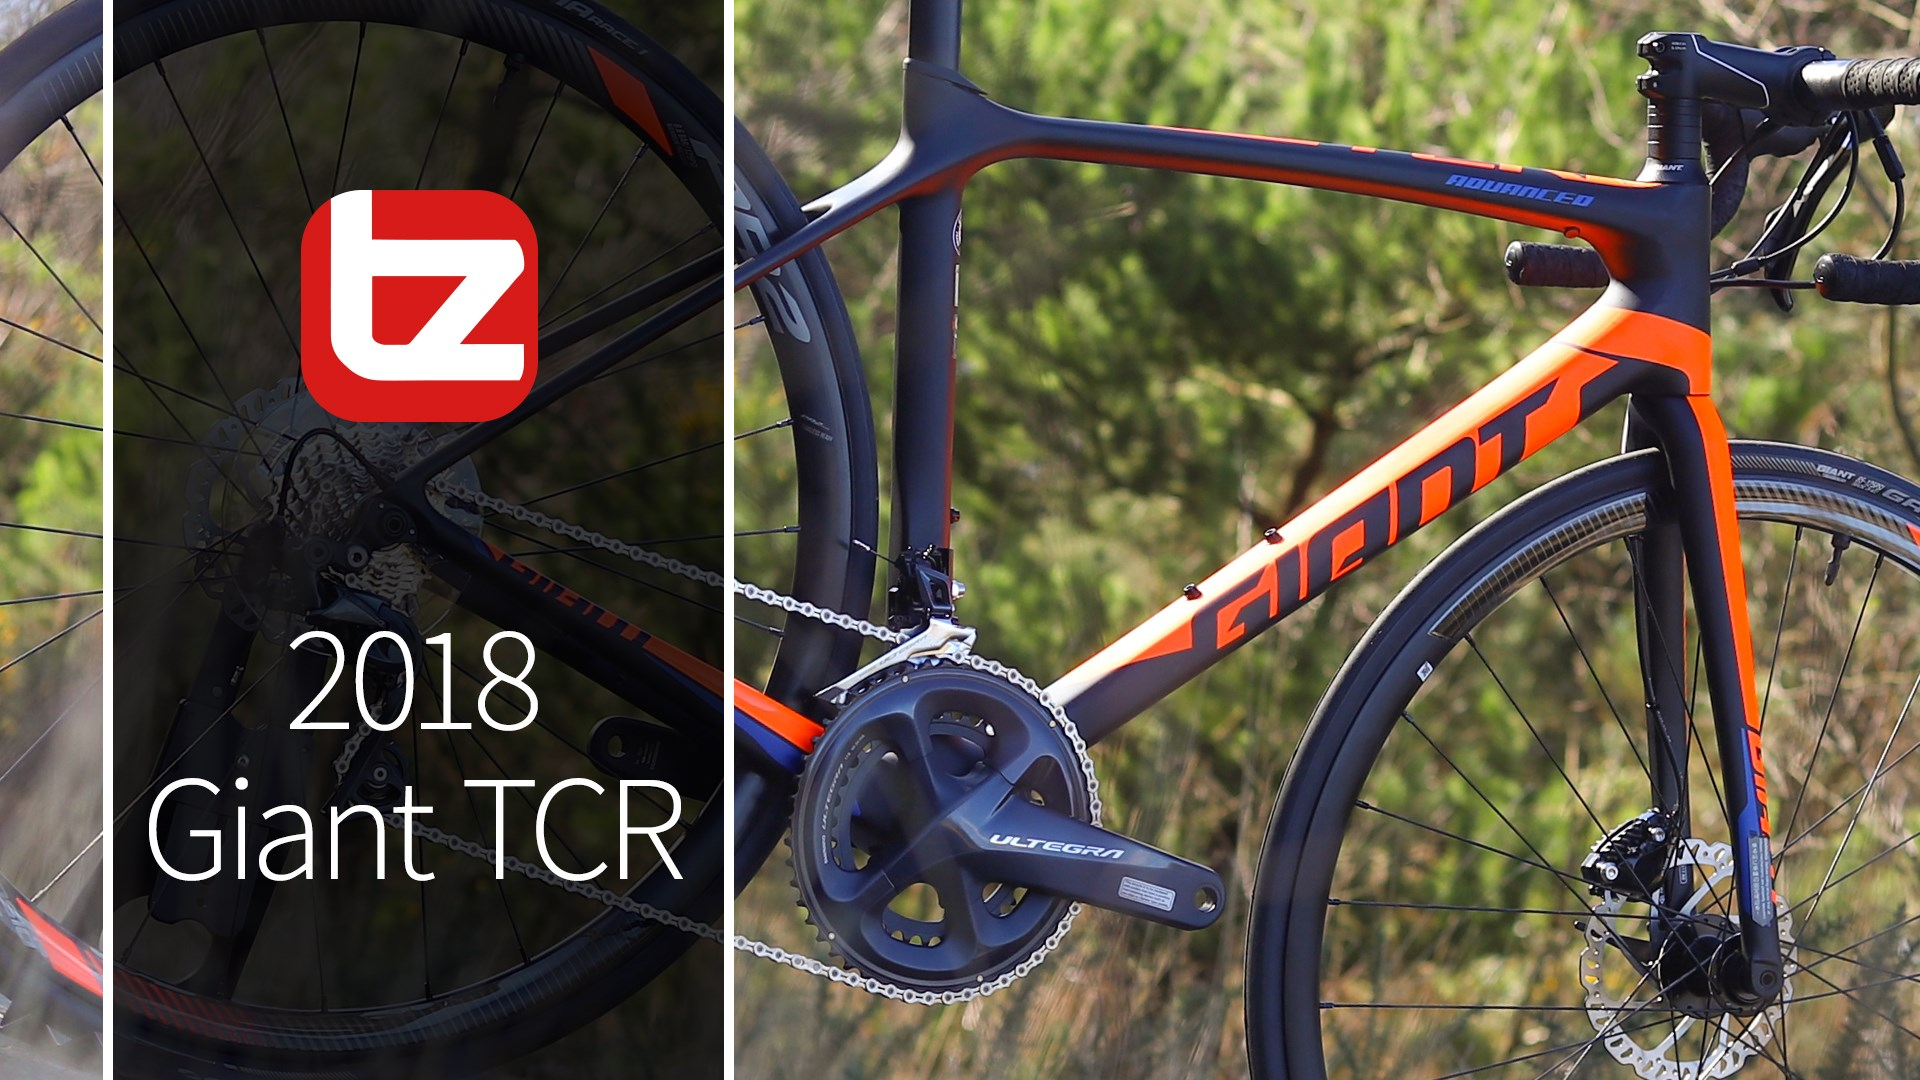 2018 Giant TCR Range Review